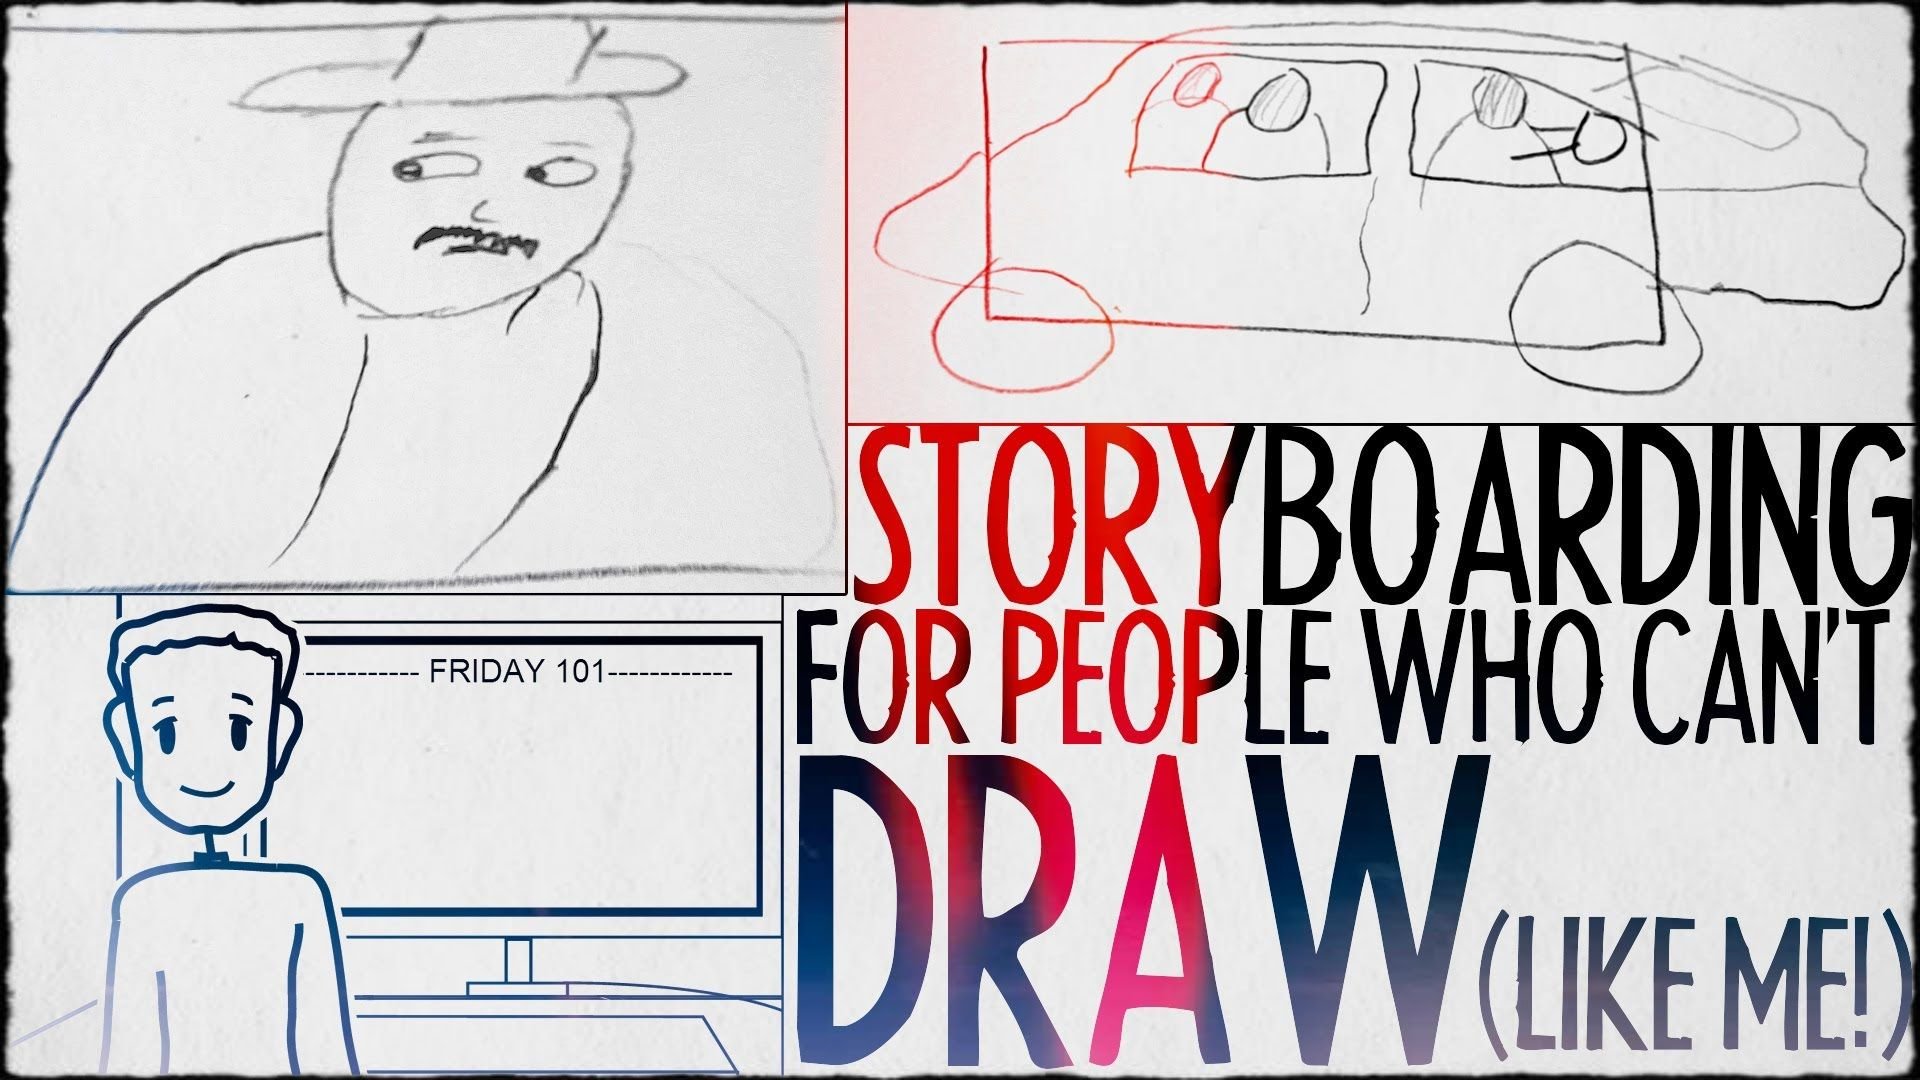 Storyboarding For People Who CanT Draw Like Me  Friday